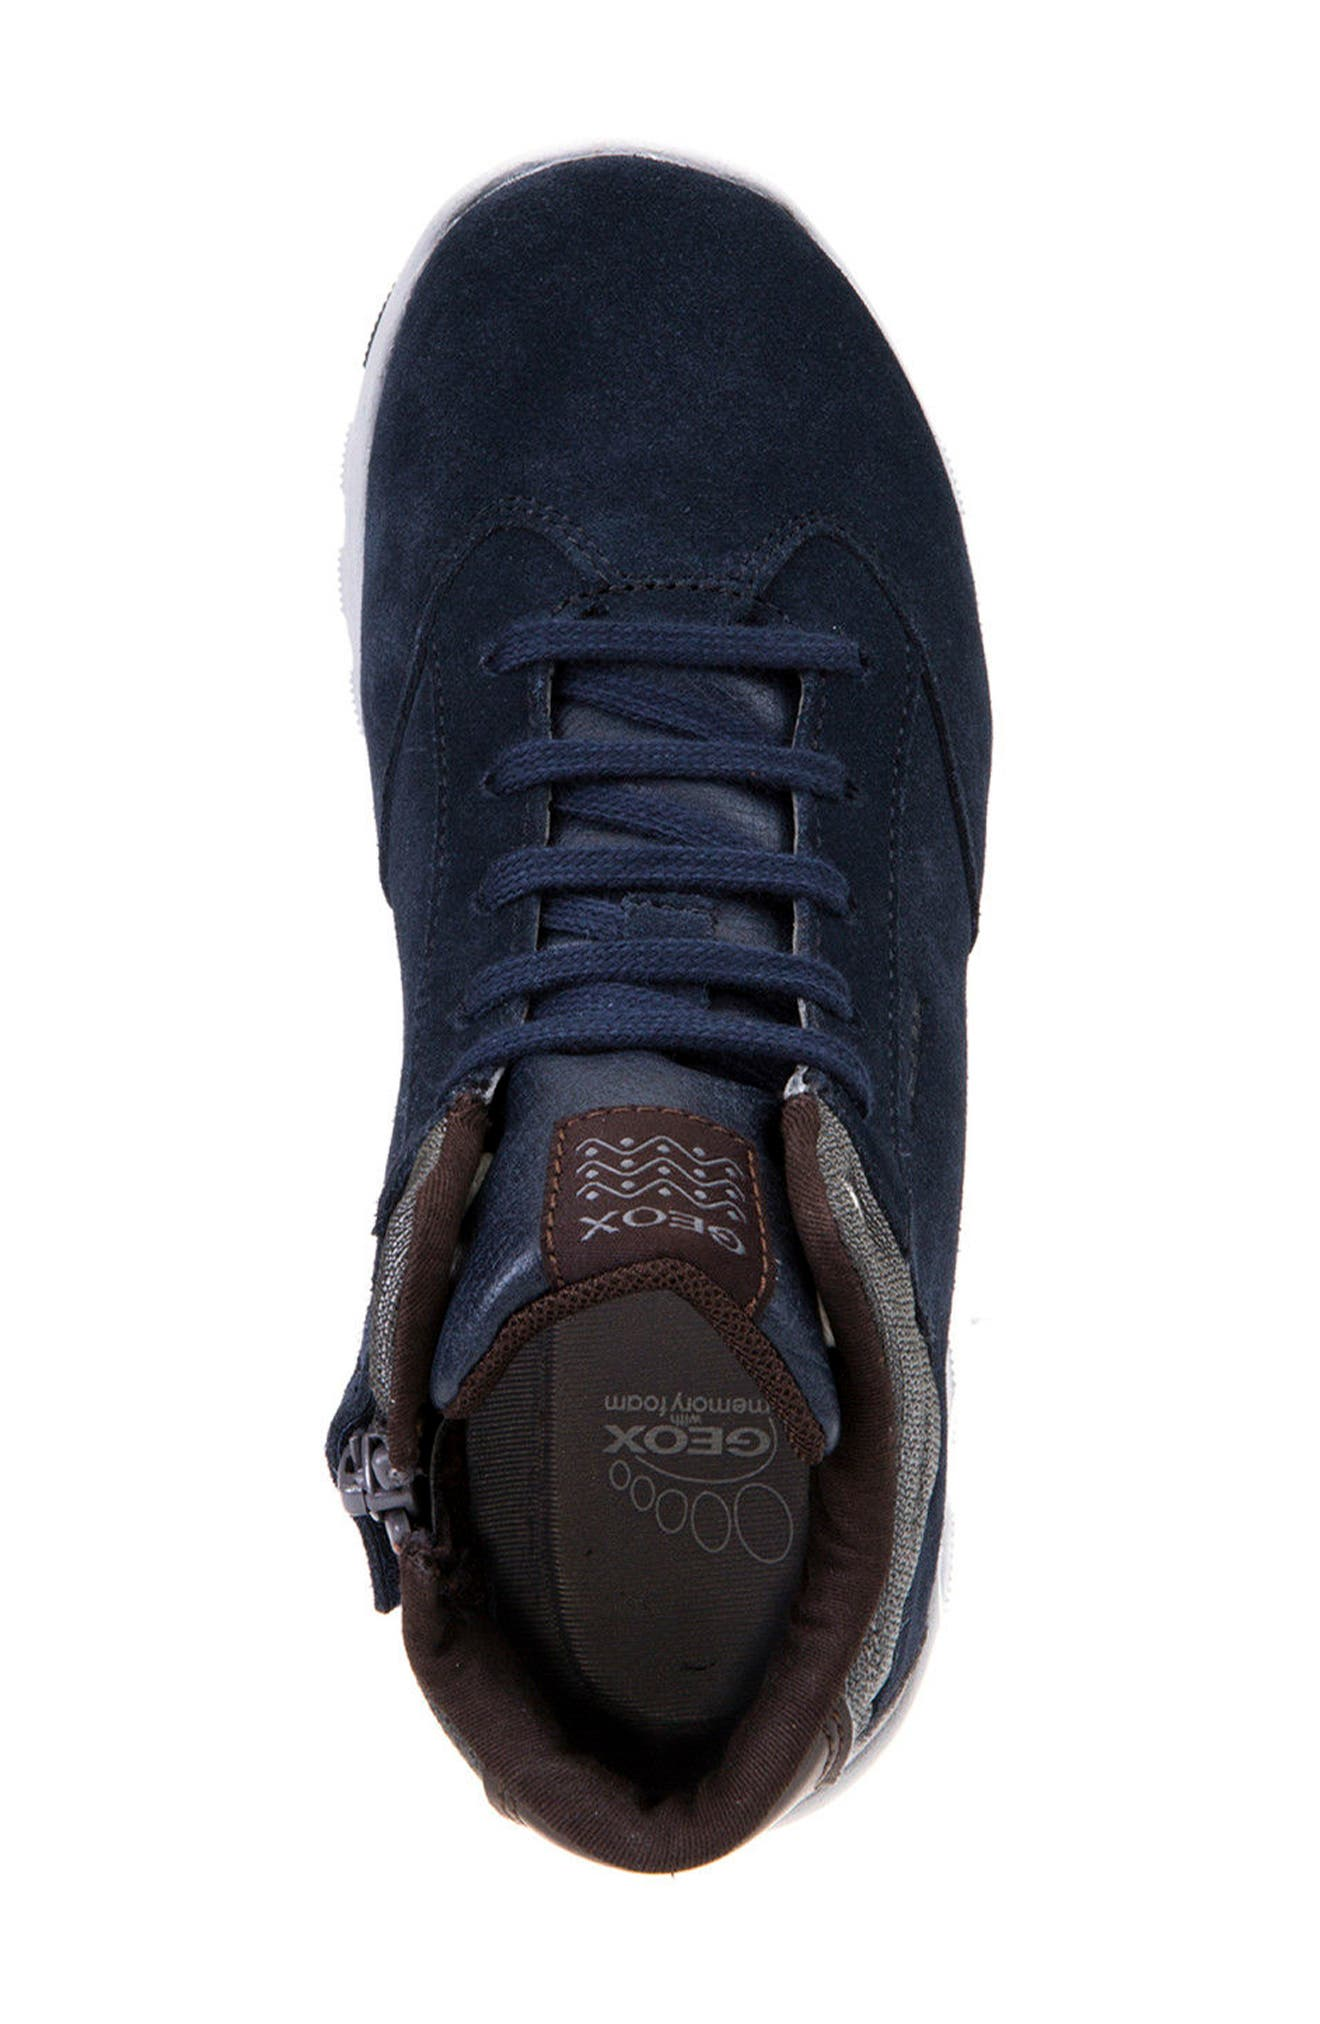 Xunday Mid Top Sneaker,                             Alternate thumbnail 15, color,